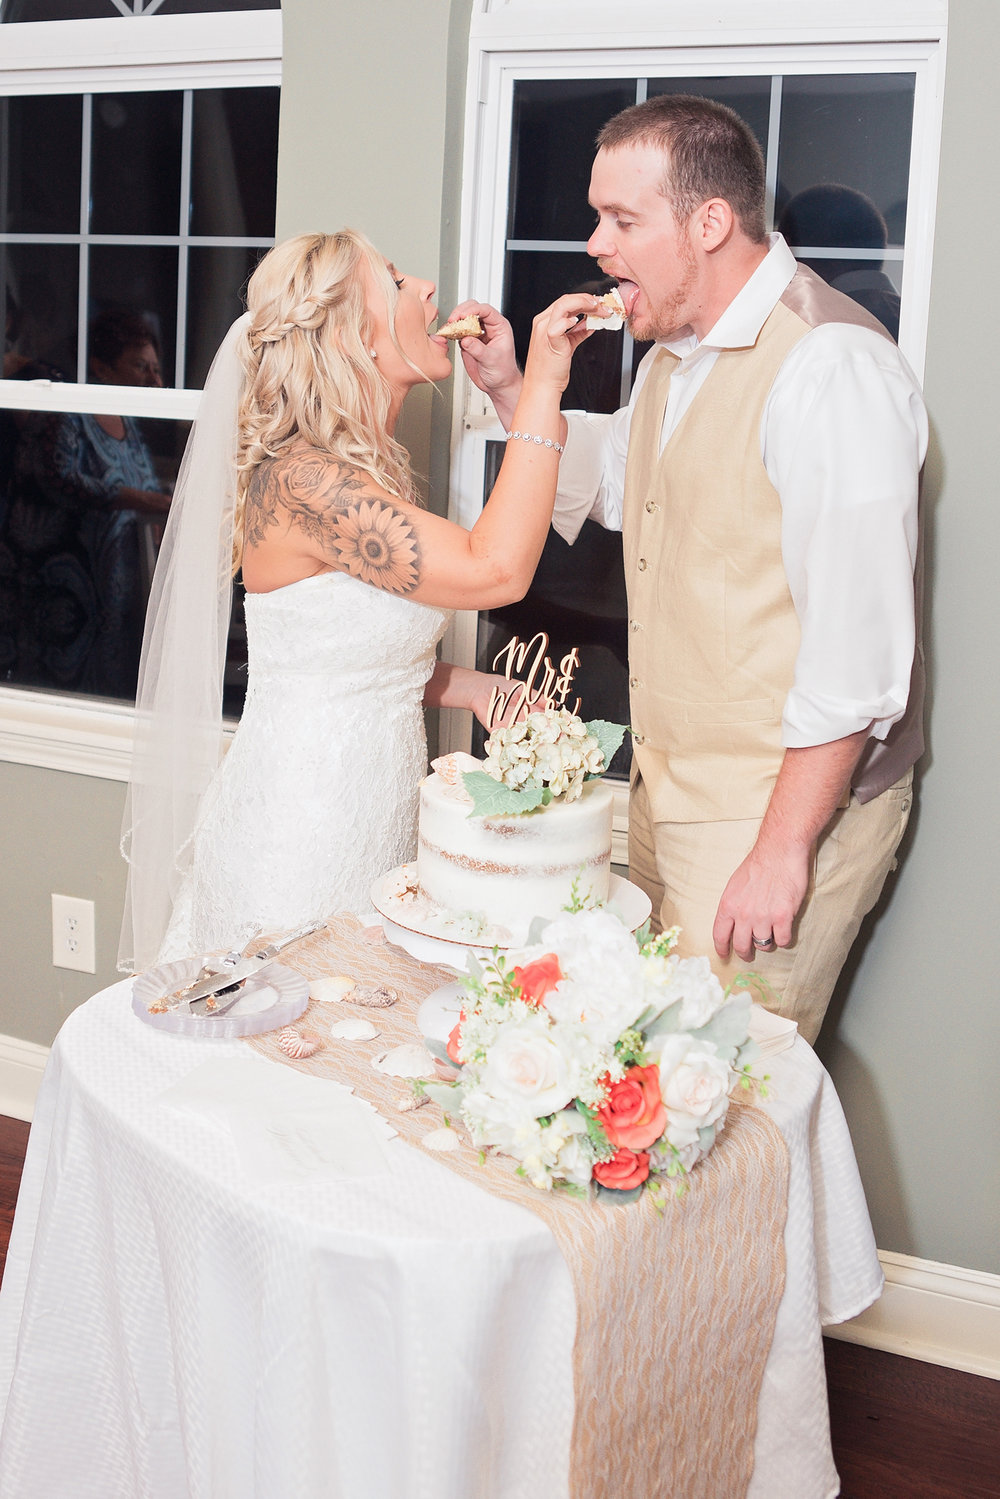 Cake_and_party (15).jpg